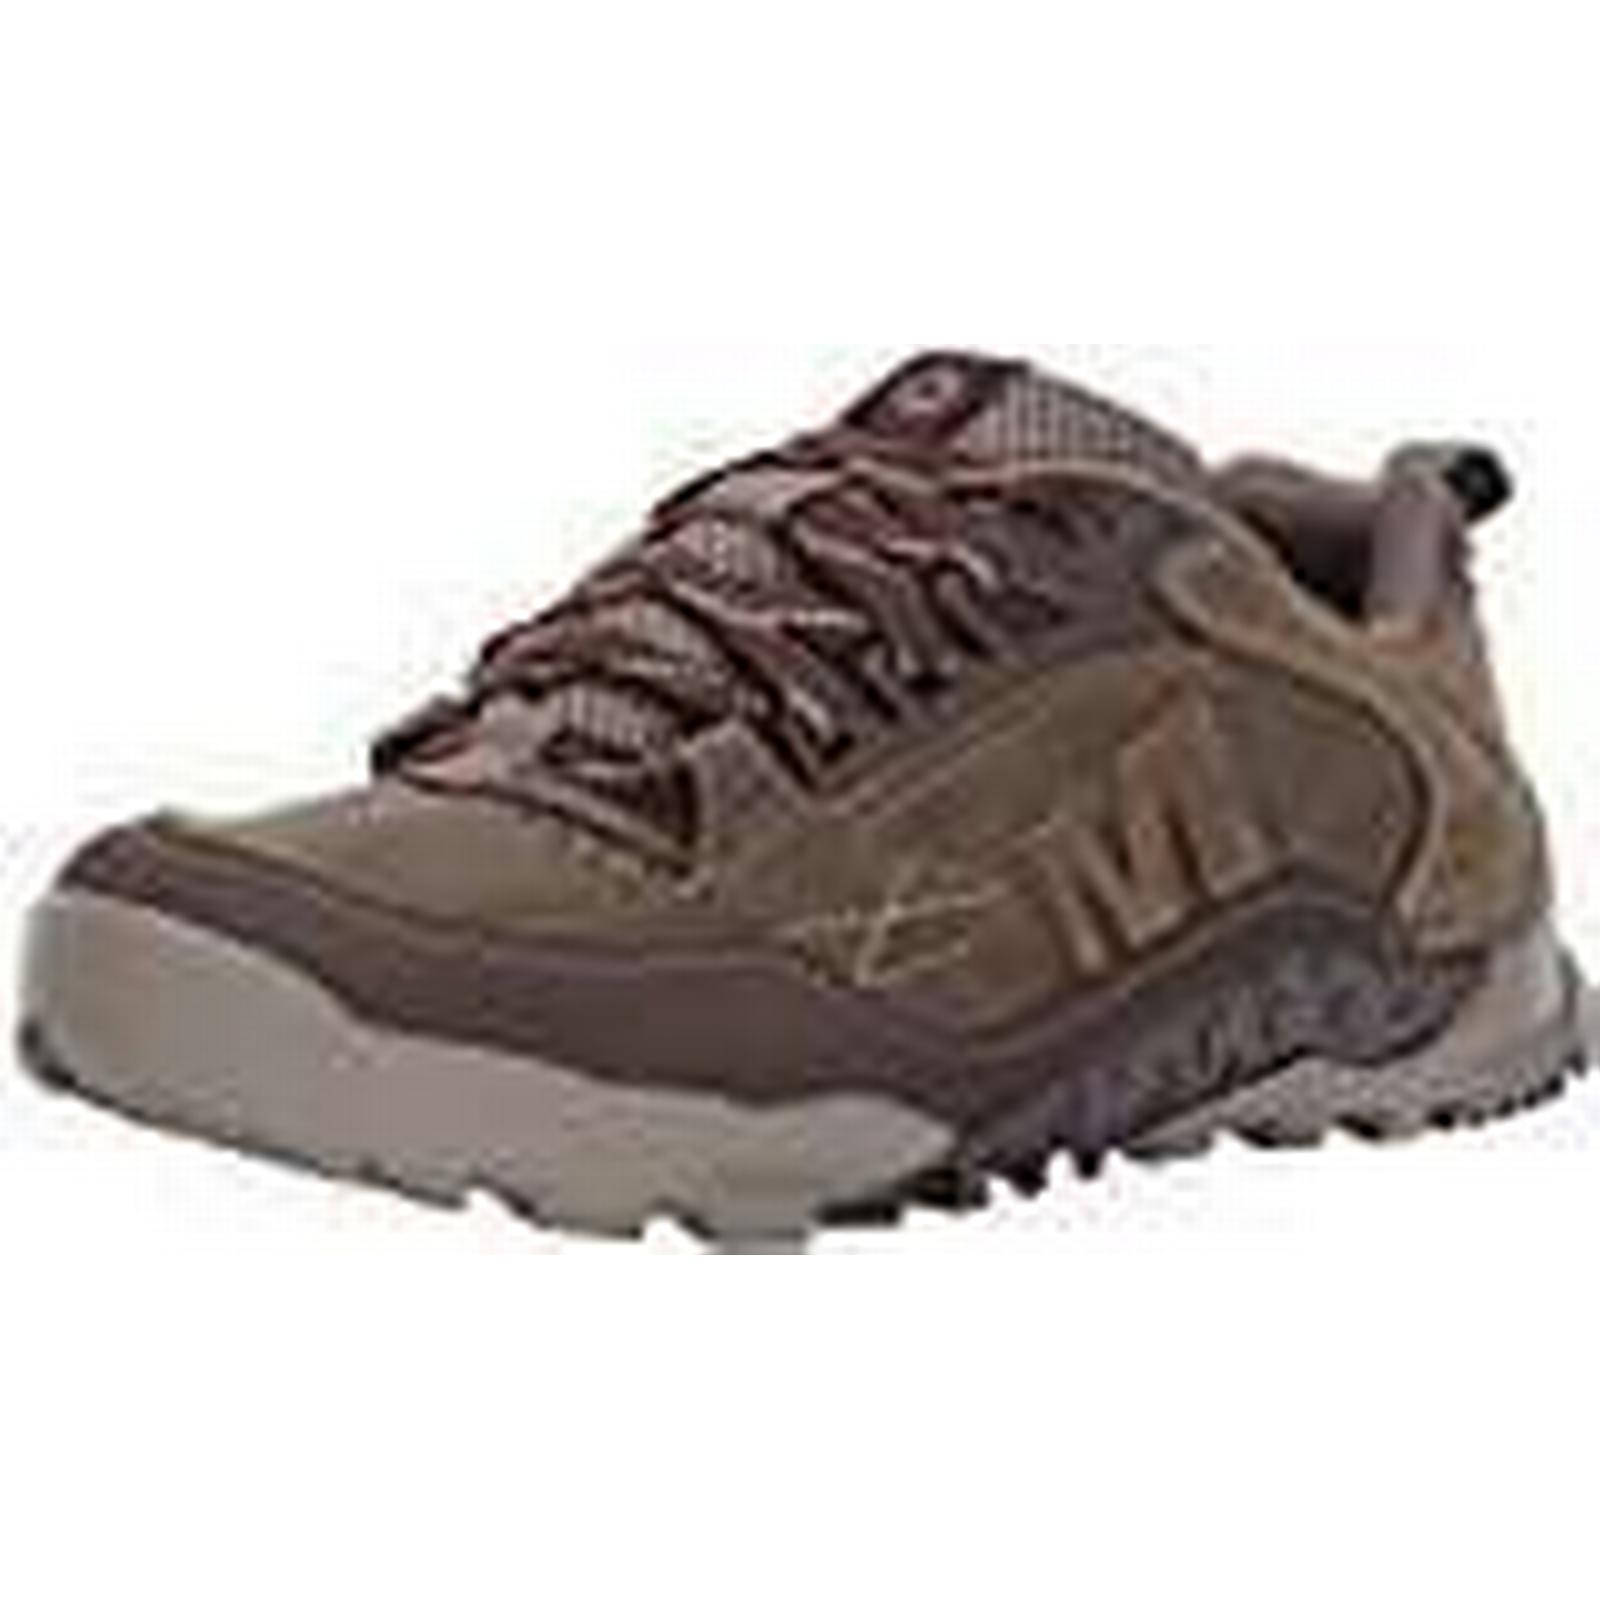 Merrell Annex Trak Low, 10.5 Men's Trainers, Beige (Cloudy), 10.5 Low, UK (45 EU) 4cac86